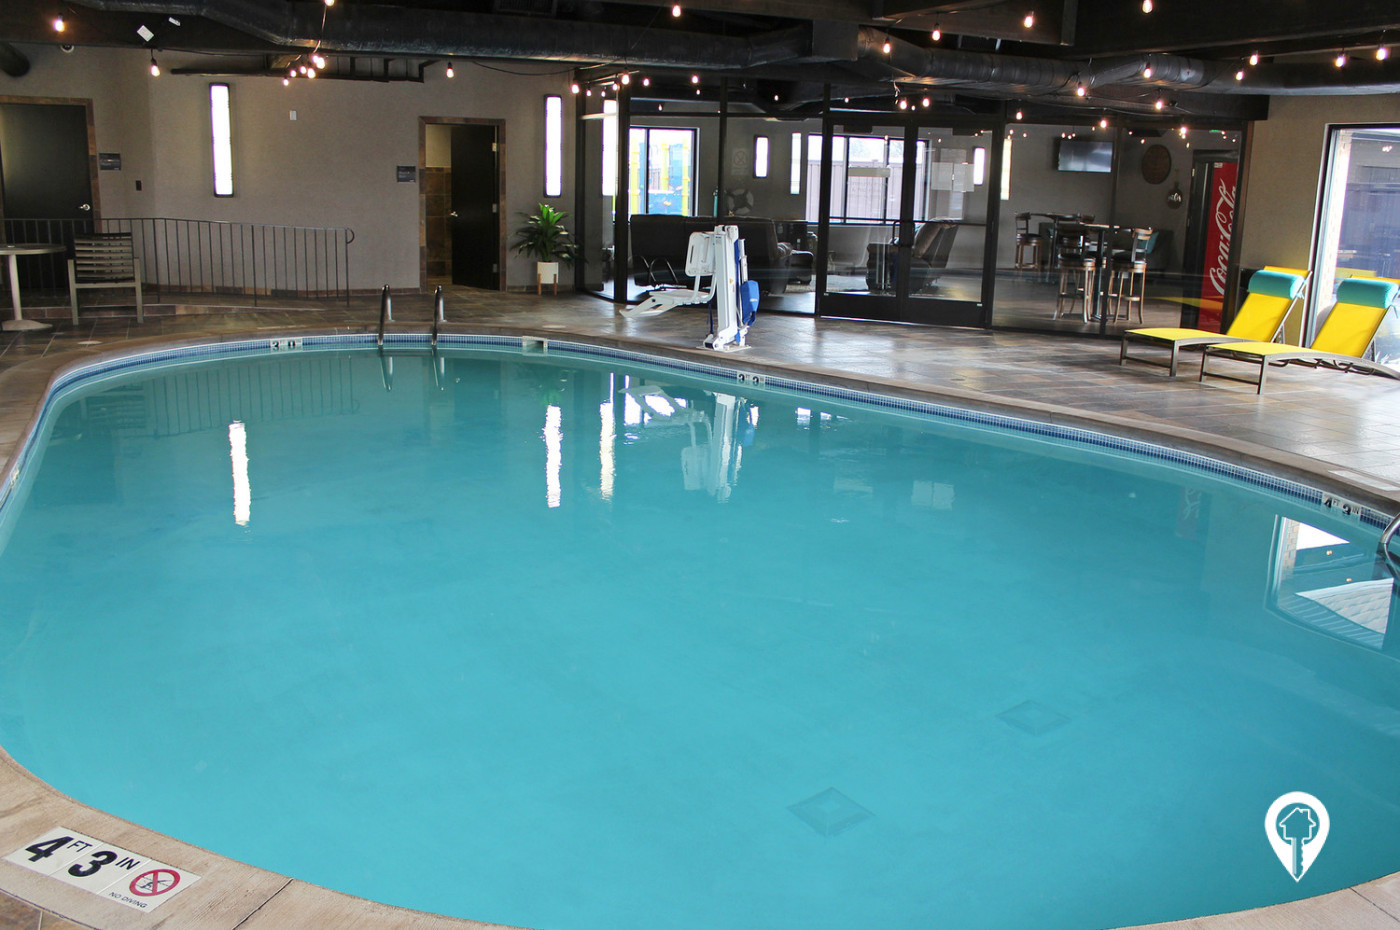 Chateau-Apartment-Homes-Enjoy-Quick-Dip-Relaxing-Day-at-Pool